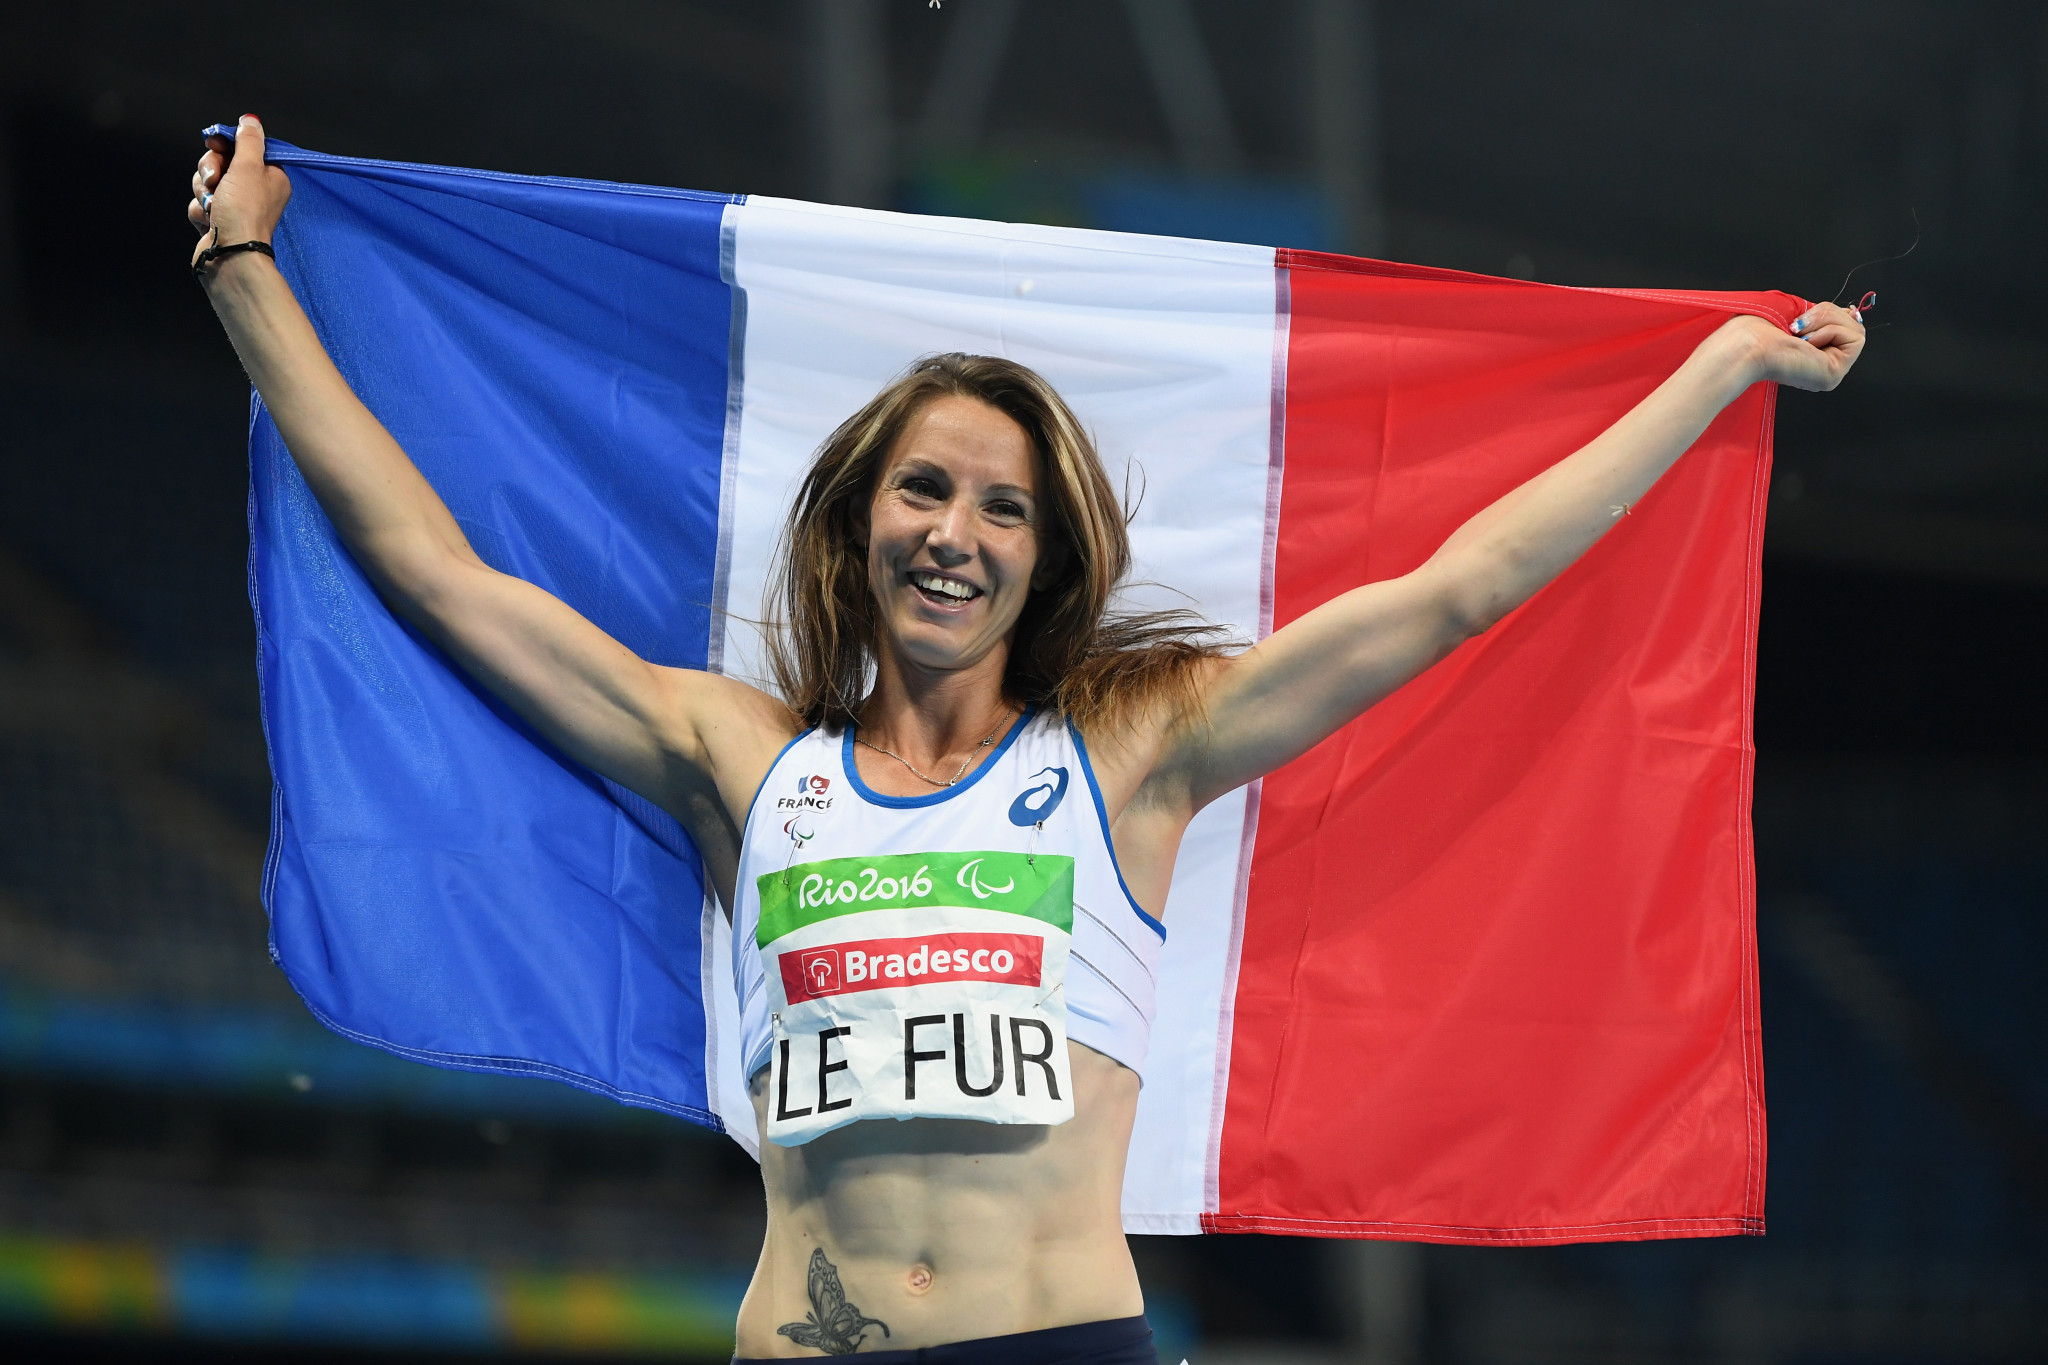 Marie-Amelie Le Fur, who won two golds at the 2016 Paralympic Games in Rio, is delighted Vichy has been awarded the 2023 Virtus Global Games ©Getty Images